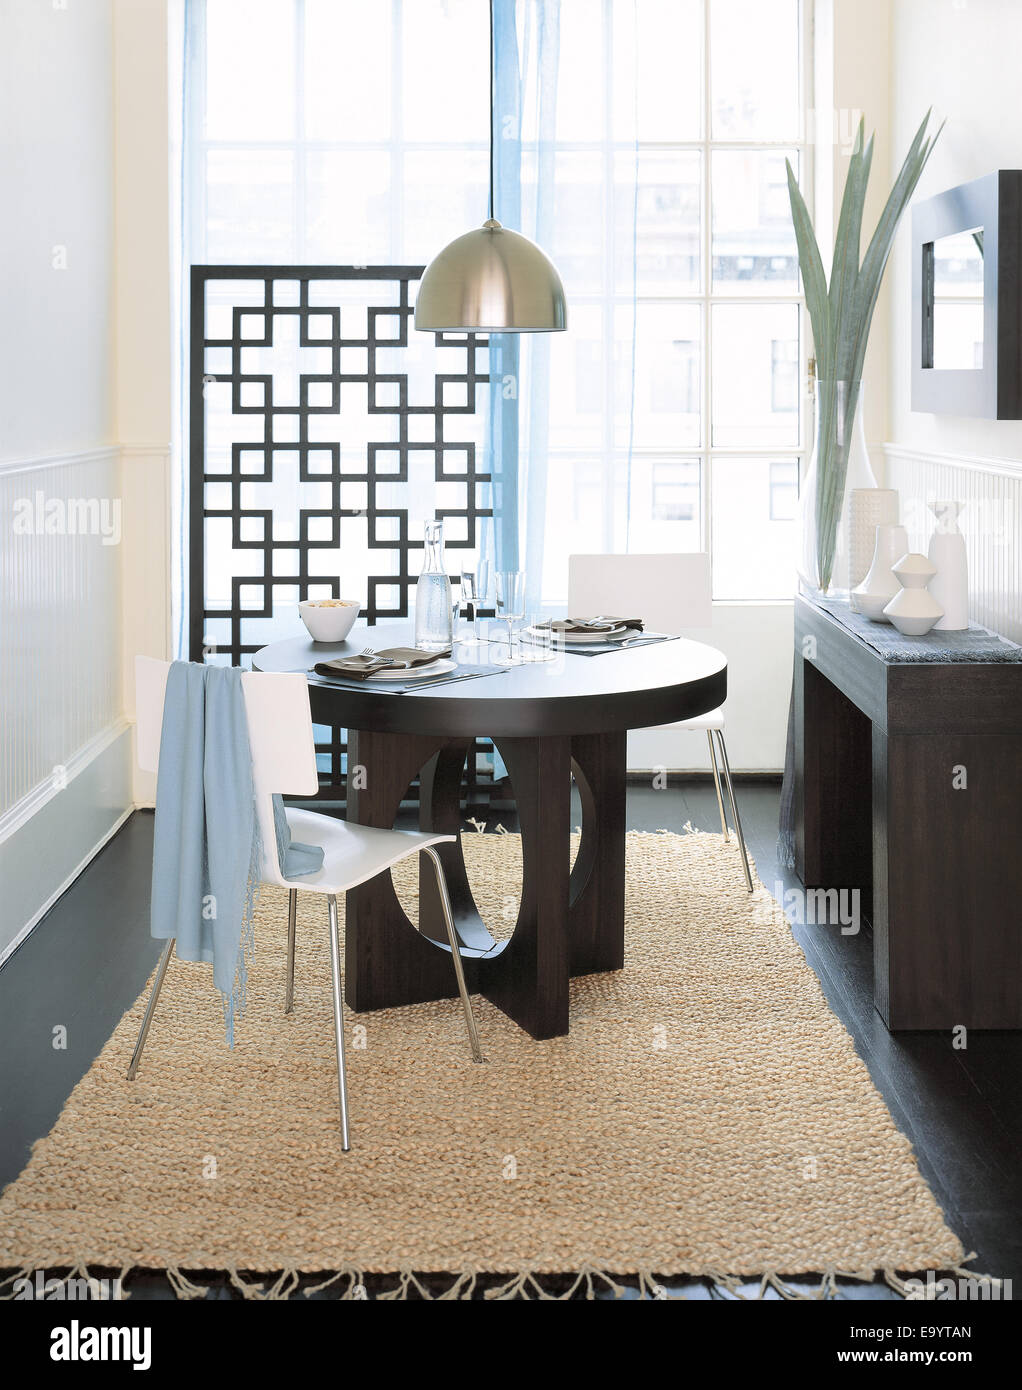 Dining Room In City - Stock Image